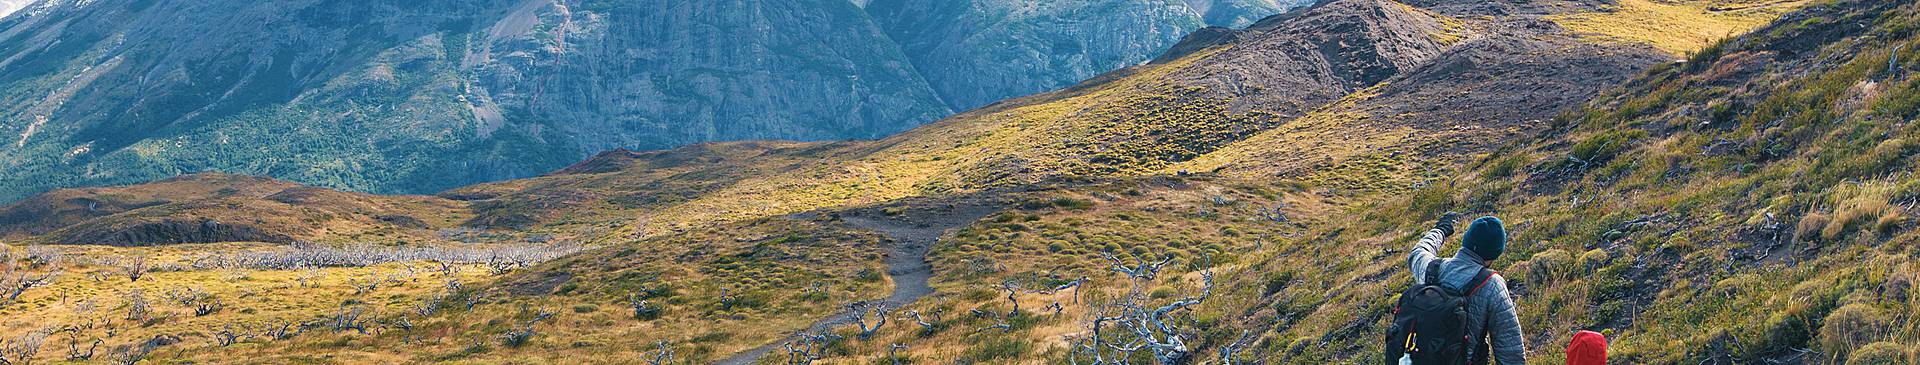 Trekking tours in Chile